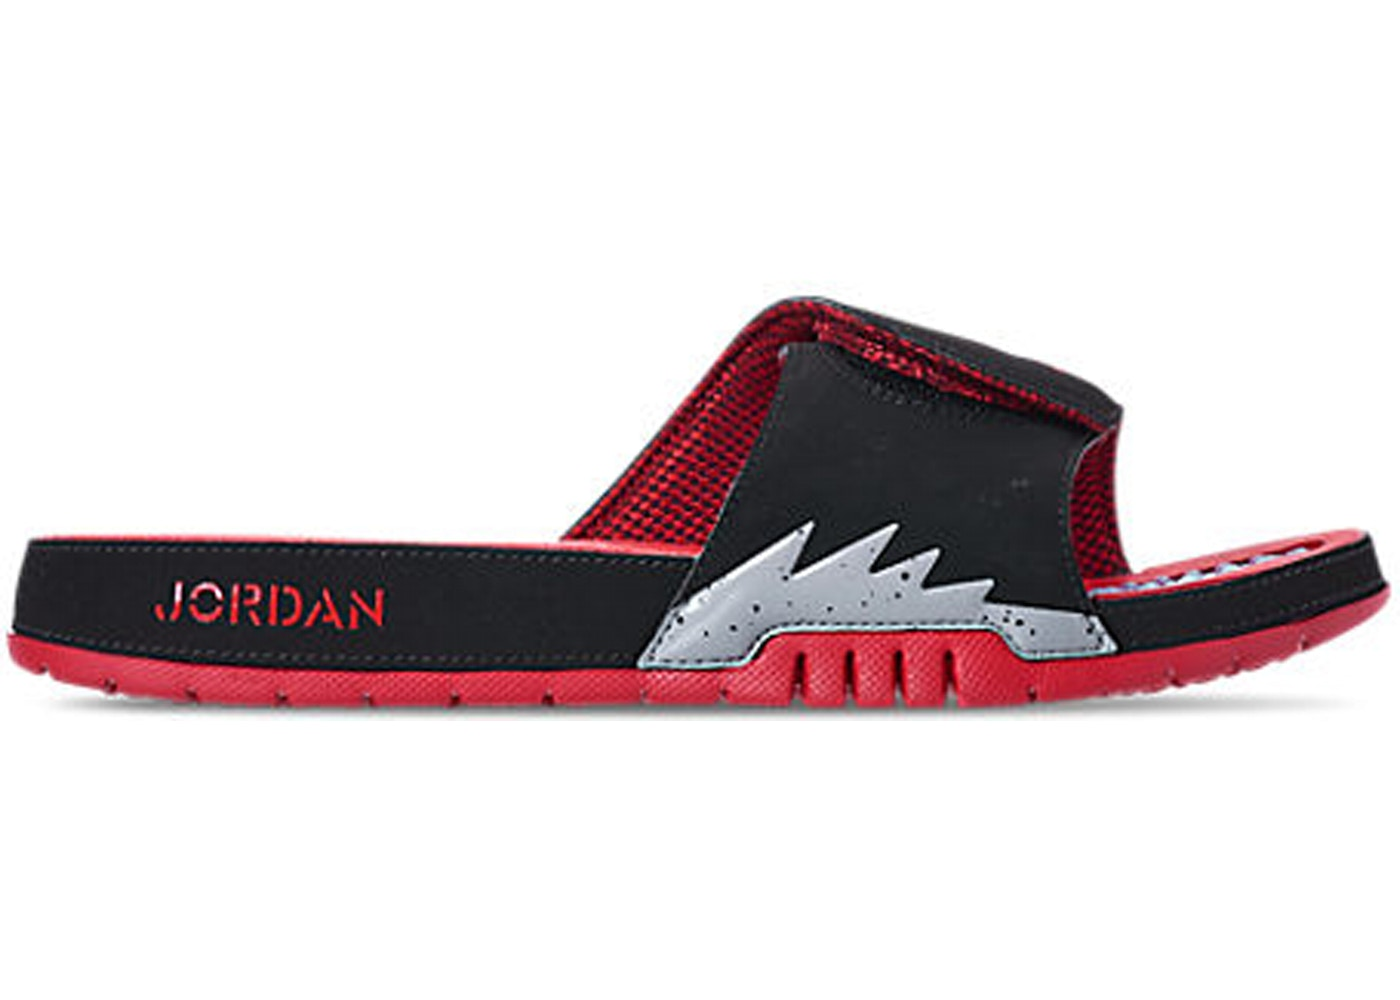 1d7cbc49f482 Jordan Hydro 5 Retro Black Particle Grey University Red - 555501-060